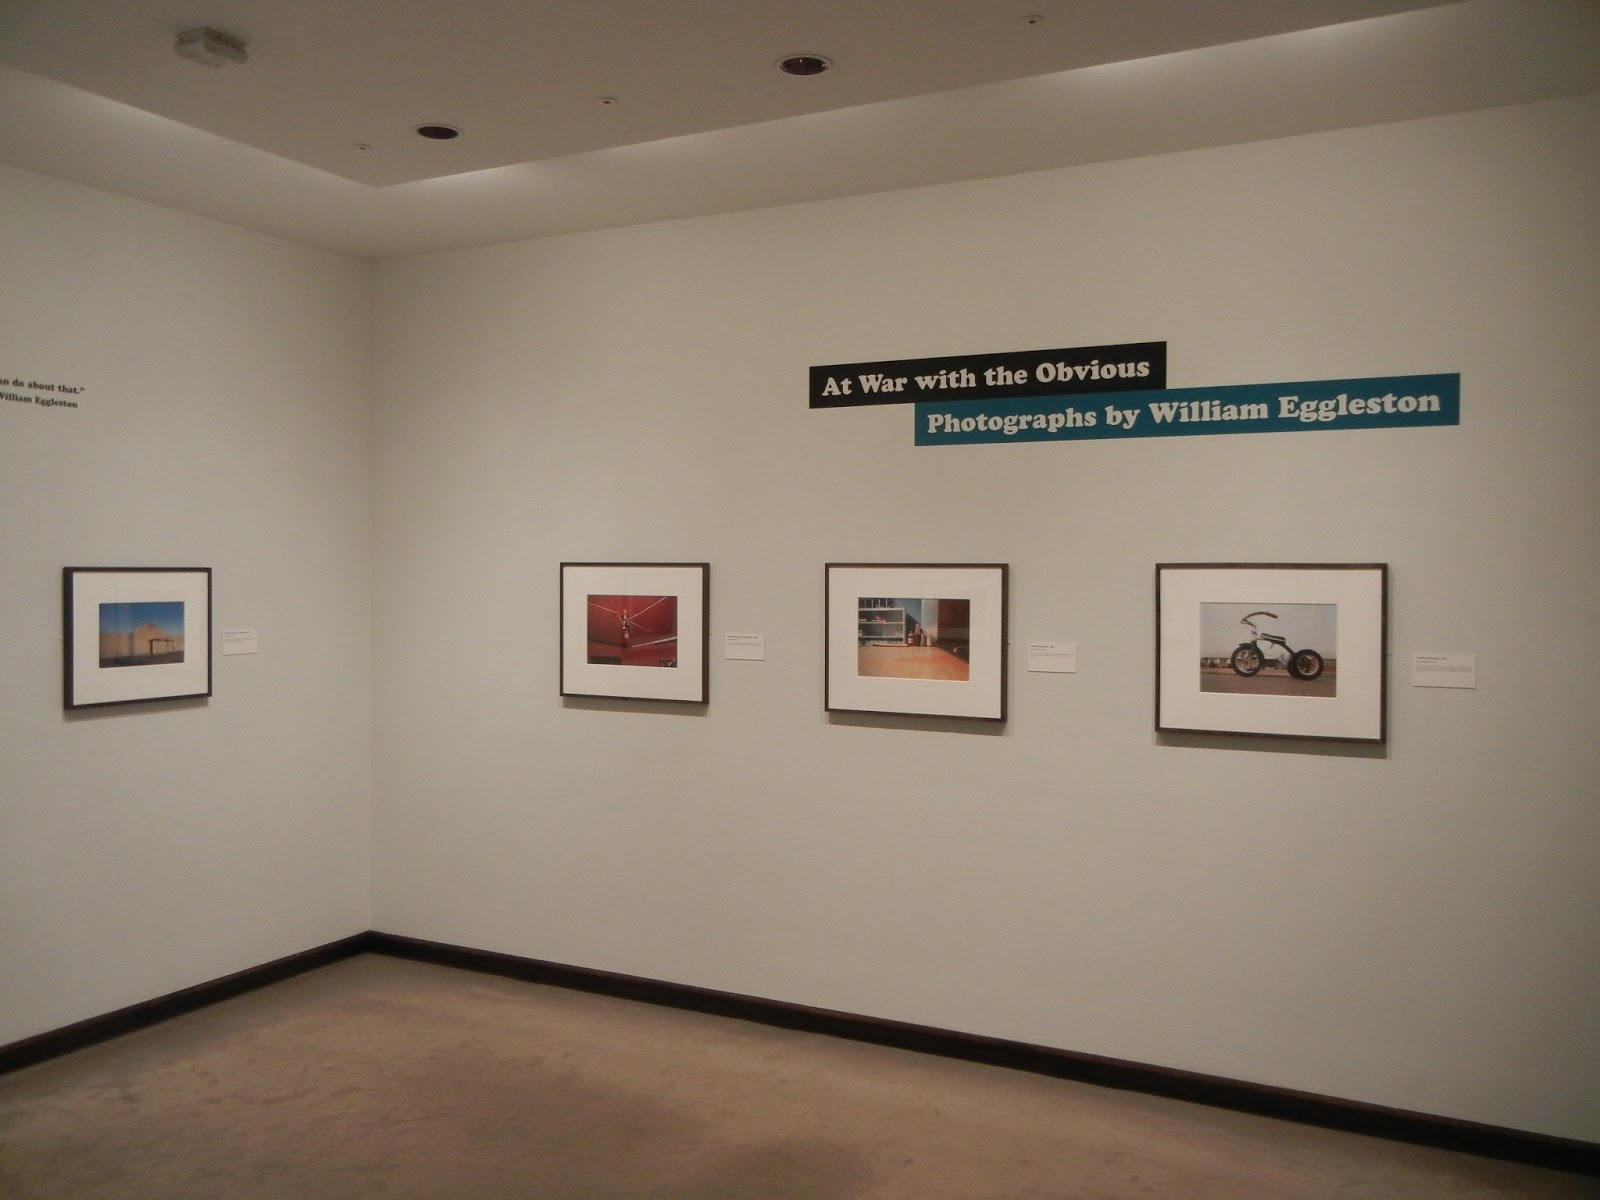 At War with the Obvious: Photographs by William Eggleston @Met